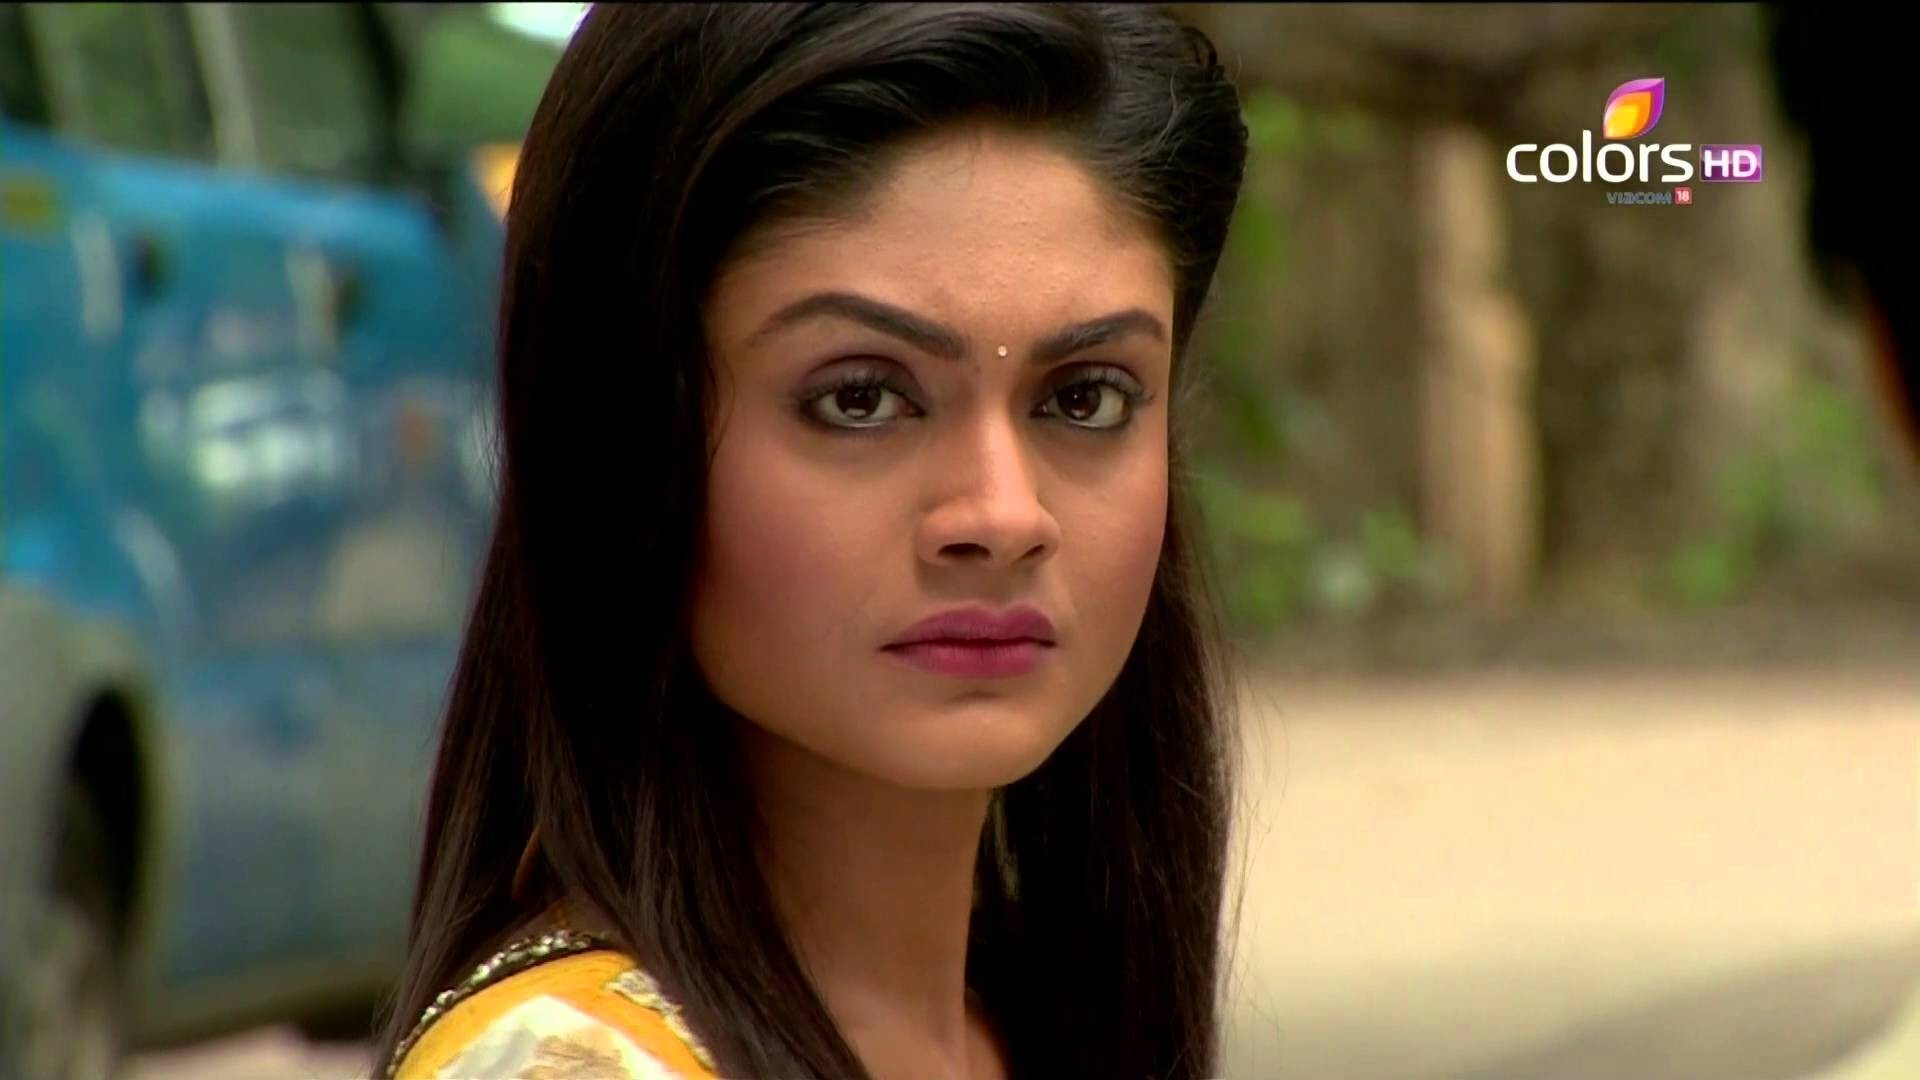 beautiful sreejita de uttaran tv serial stars wallpapers | hd wallpapers